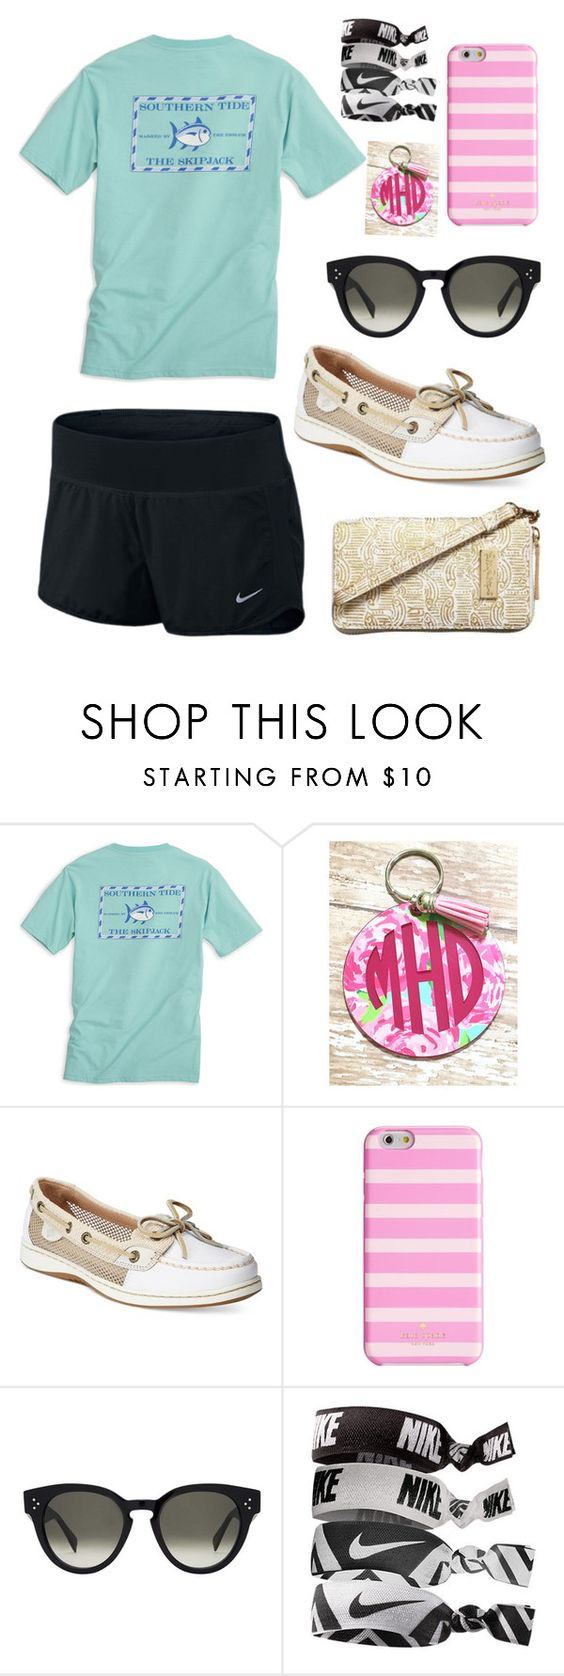 """""""Preppy"""" by becker17 ❤ liked on Polyvore featuring Southern Tide, Sperry, Kate Spade, CÉLINE, NIKE and Lilly Pulitzer"""